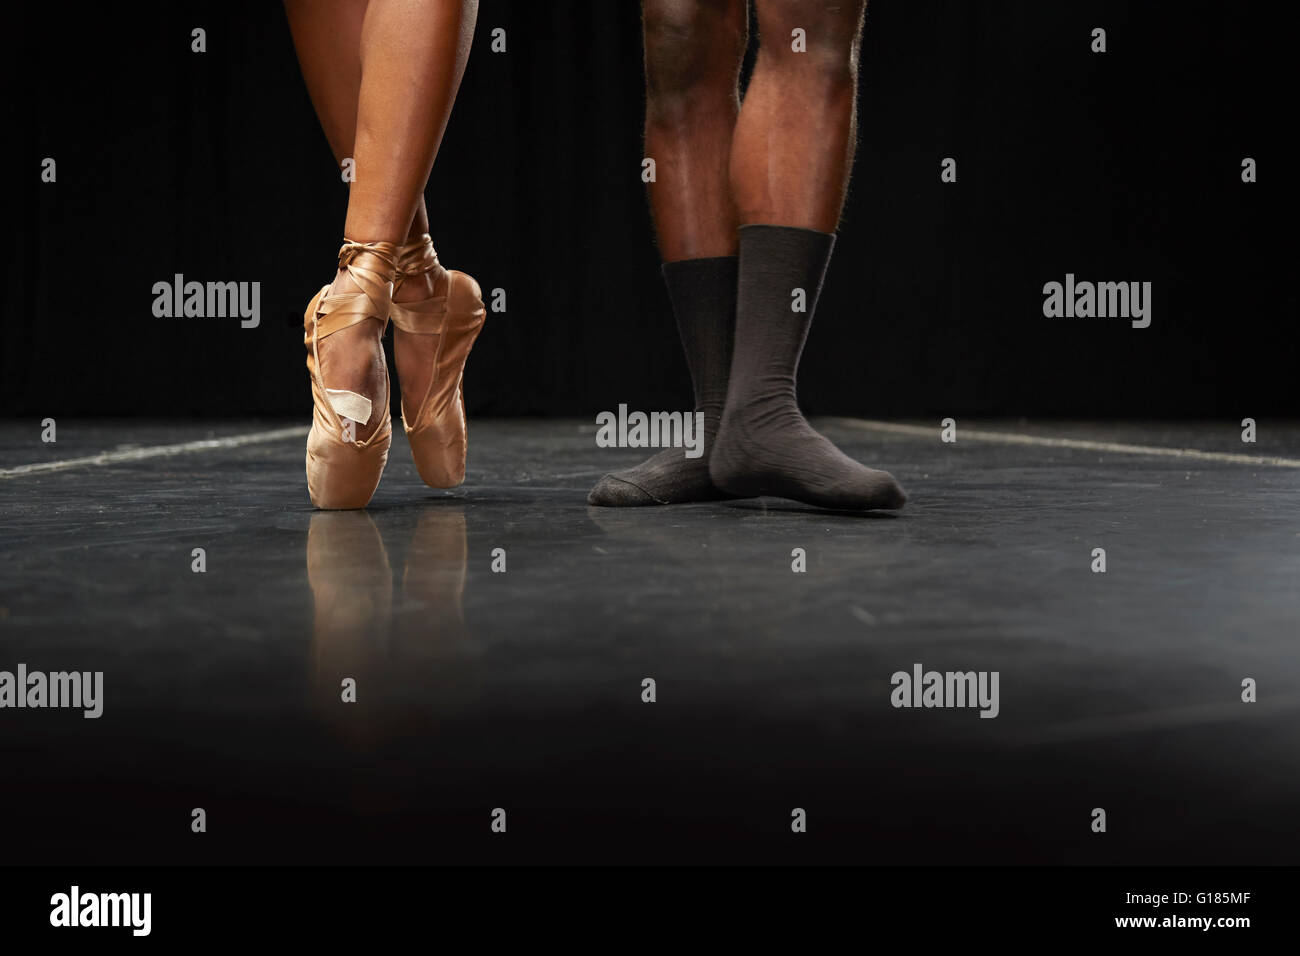 Ballet dancers' feet en pointe and in second position - Stock Image